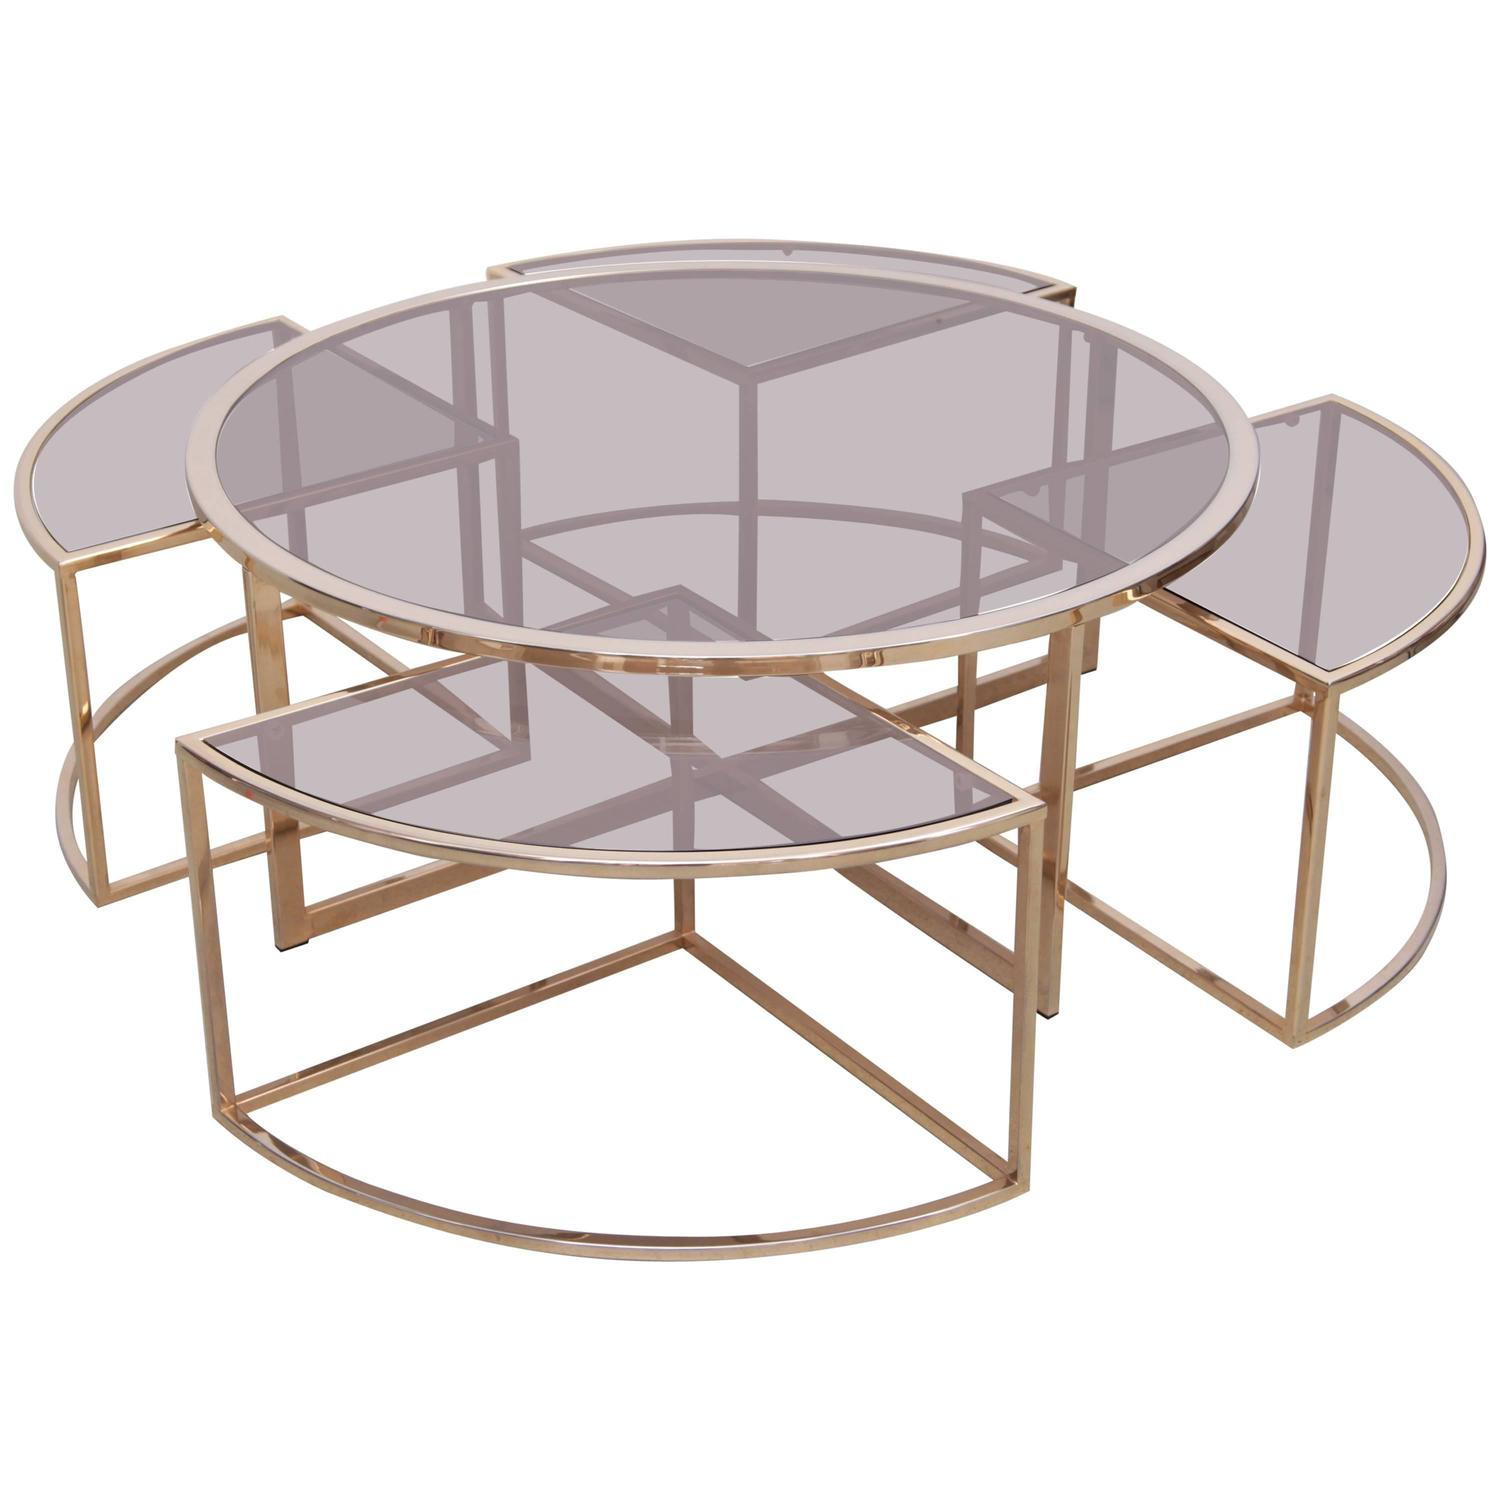 Round brass coffee table with four nesting tables by maison charles at 1stdibs Brass round coffee table